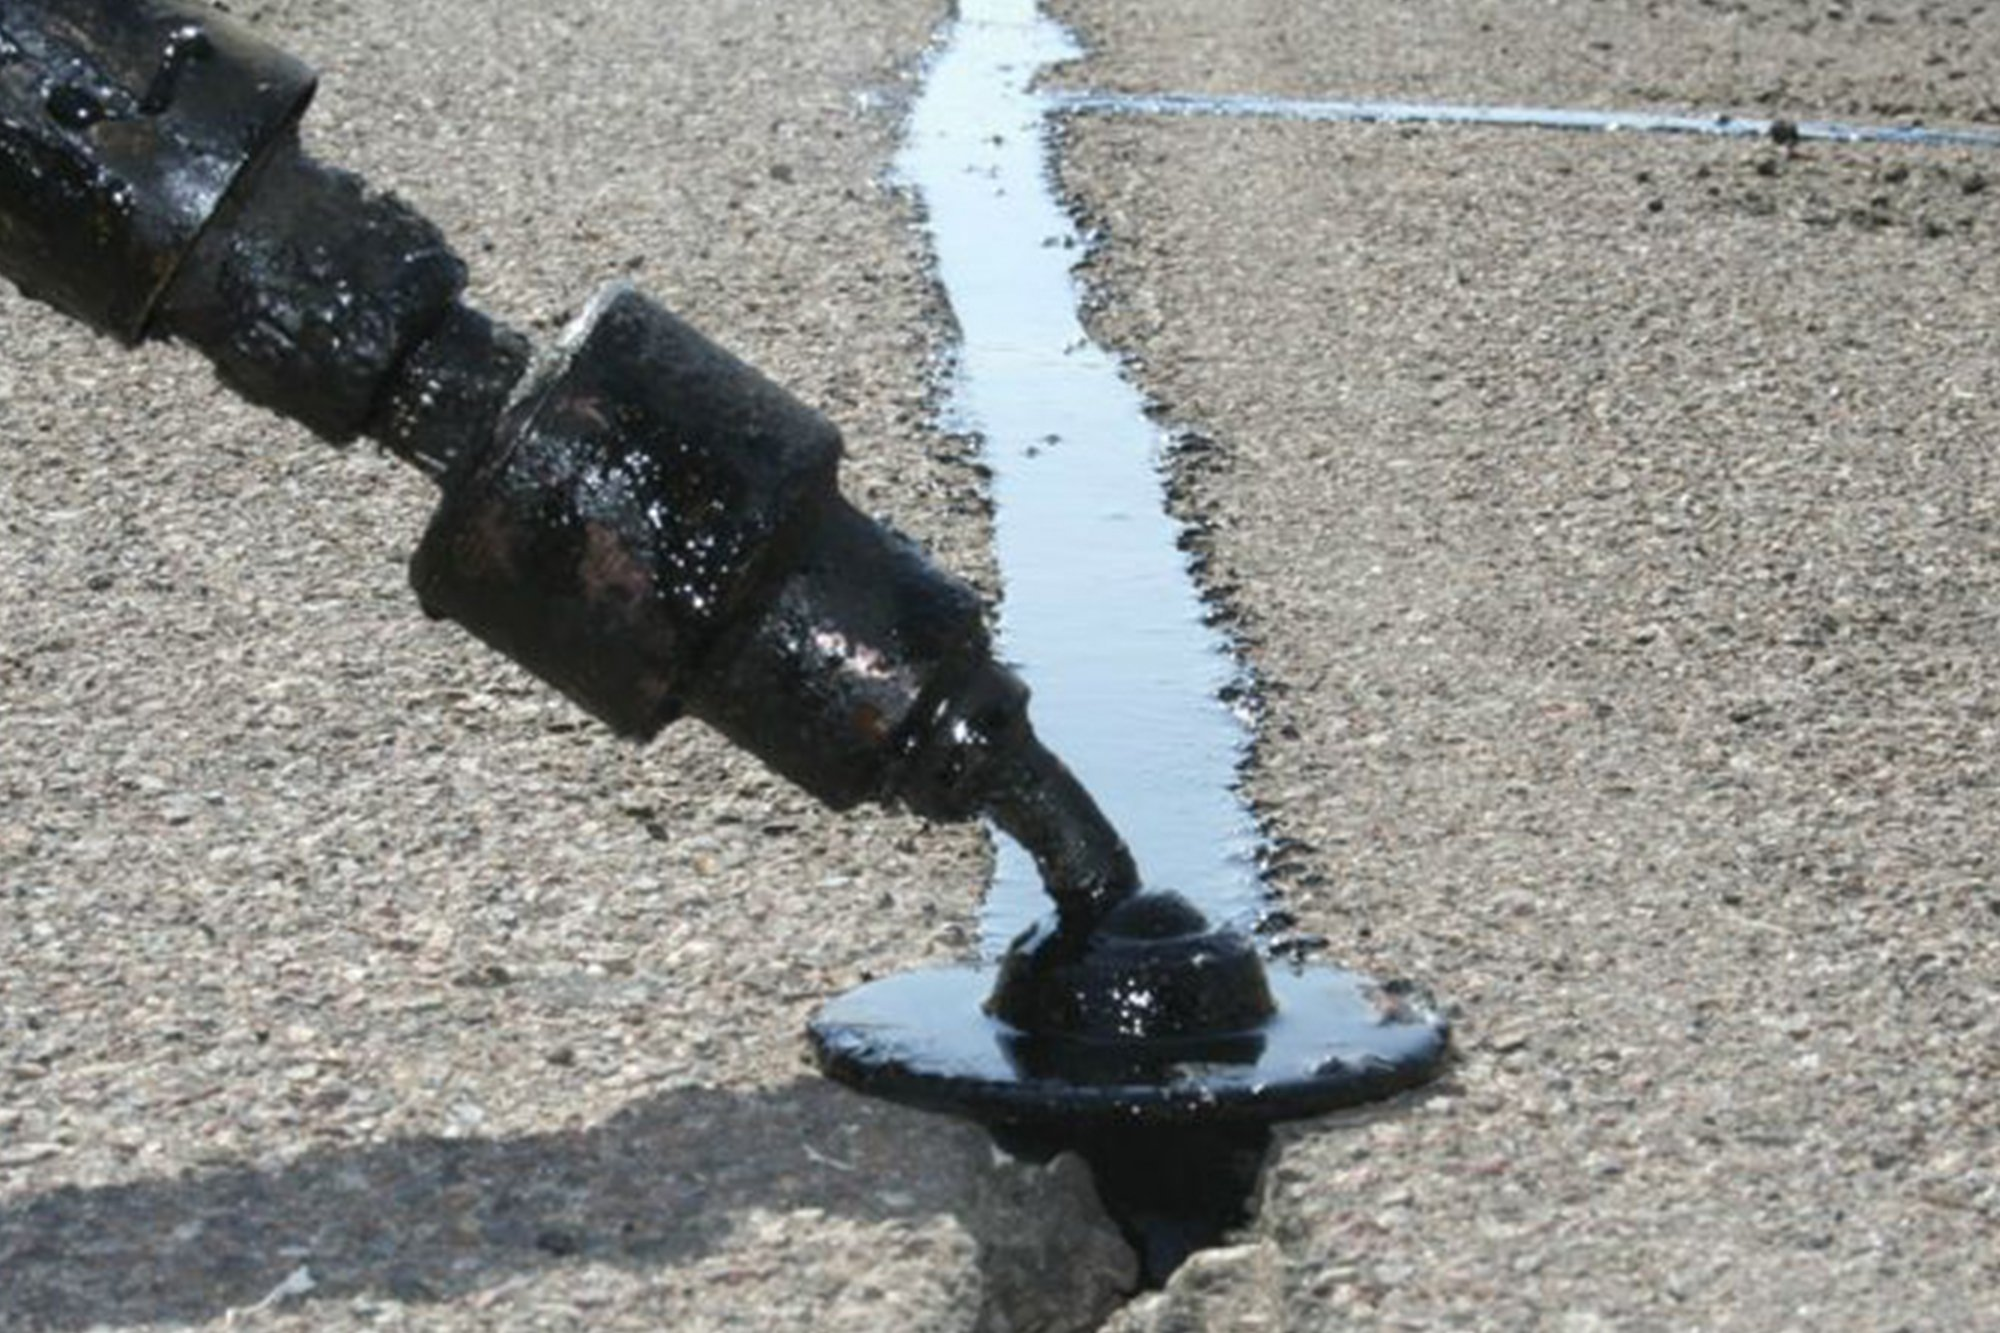 Lincoln Paving and Asphalt Repair crack repair after - America's Pavement Maintenance Specialist | Lincoln, Nebraska